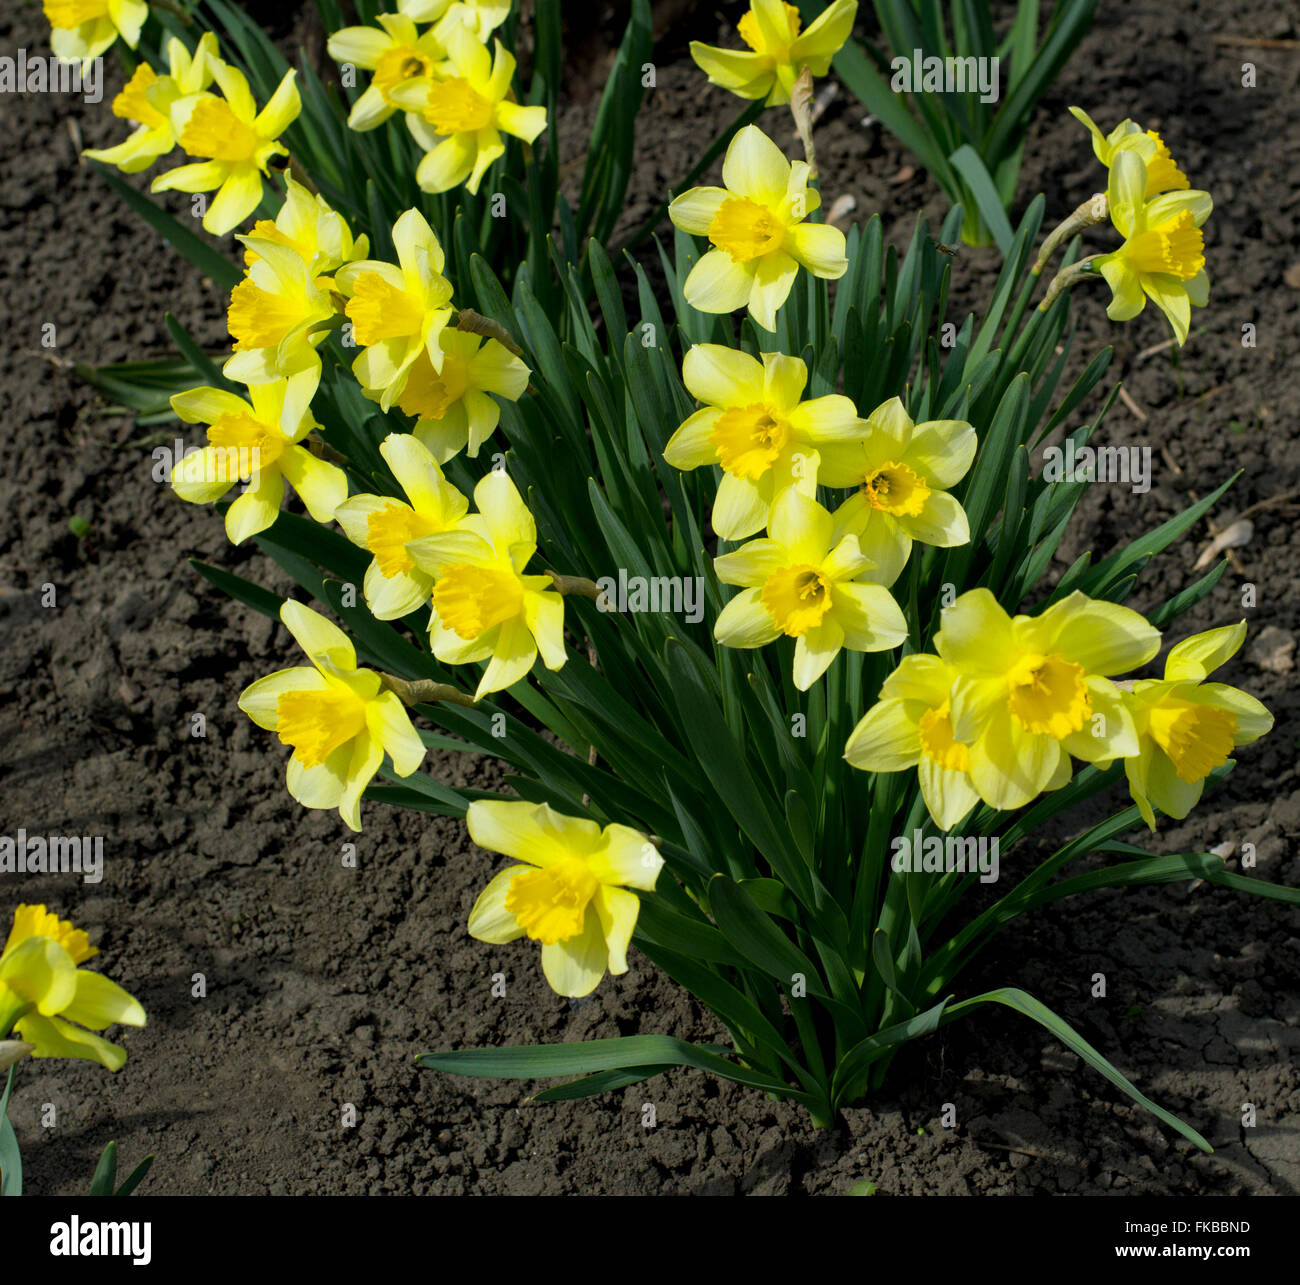 yellow spring flowers on the earth - Stock Image